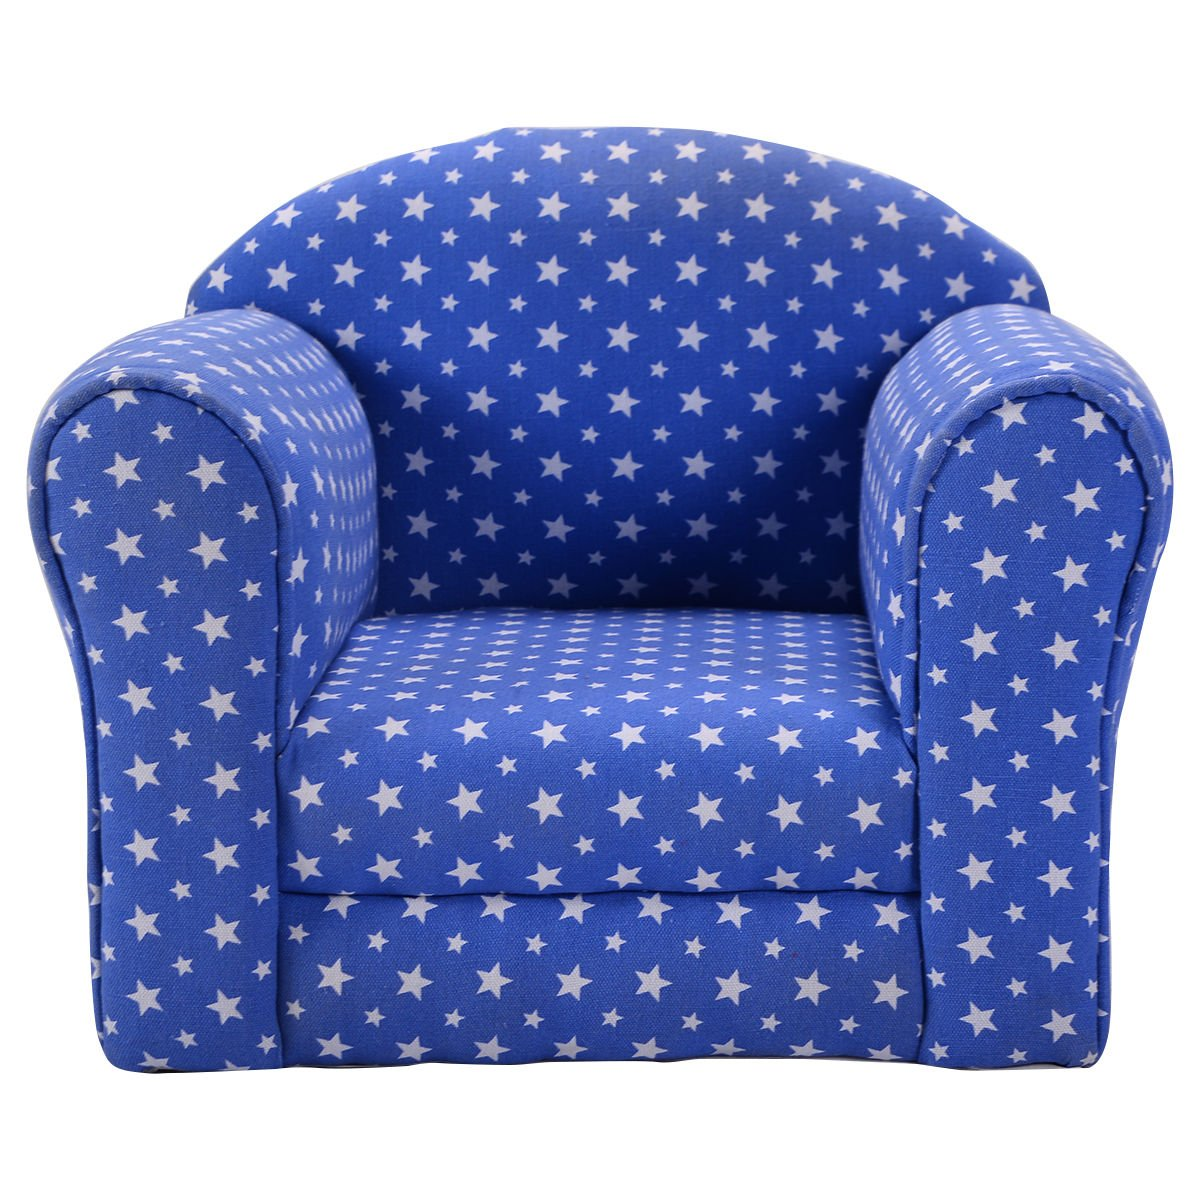 Superieur Amazon.com: Costzon Kids Sofa Armrest Chair Couch Children Living Room  Toddler Furniture (Star, Blue): Toys U0026 Games